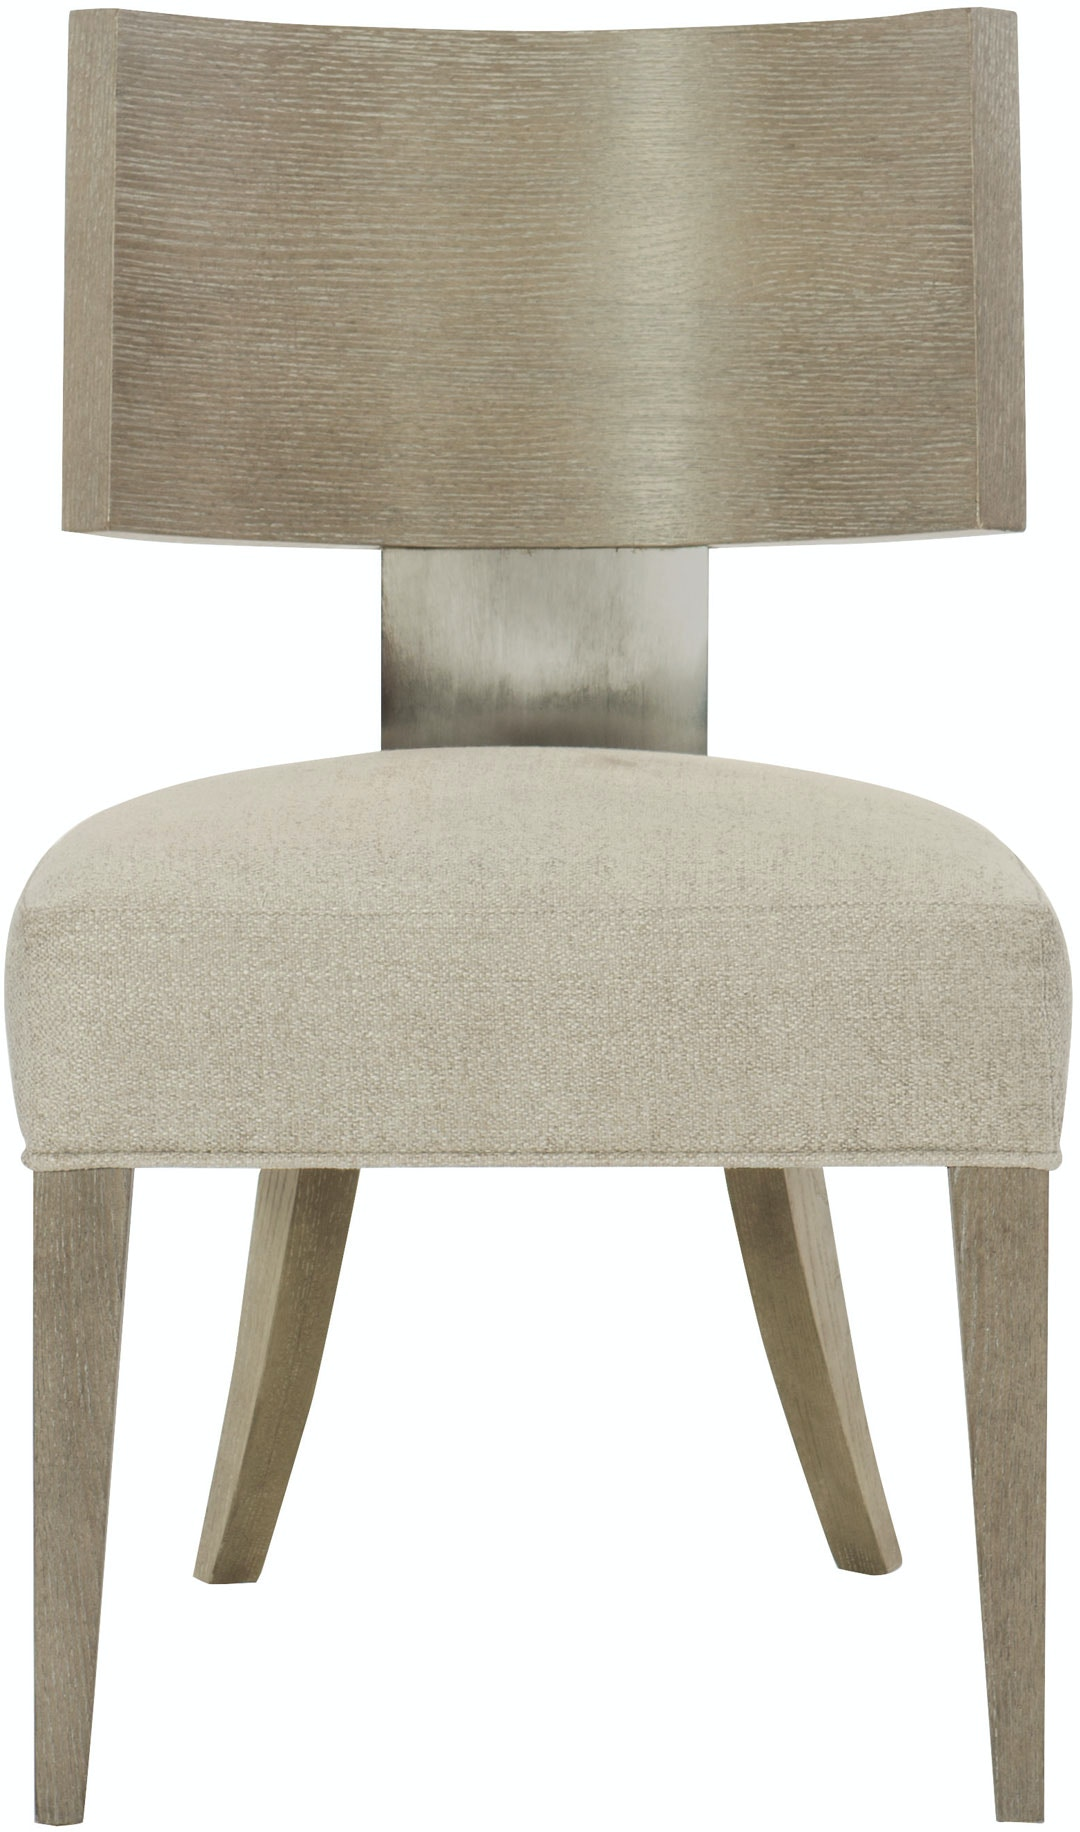 Bernhardt Furniture 373 547 Dining Room Mosaic Side Chair